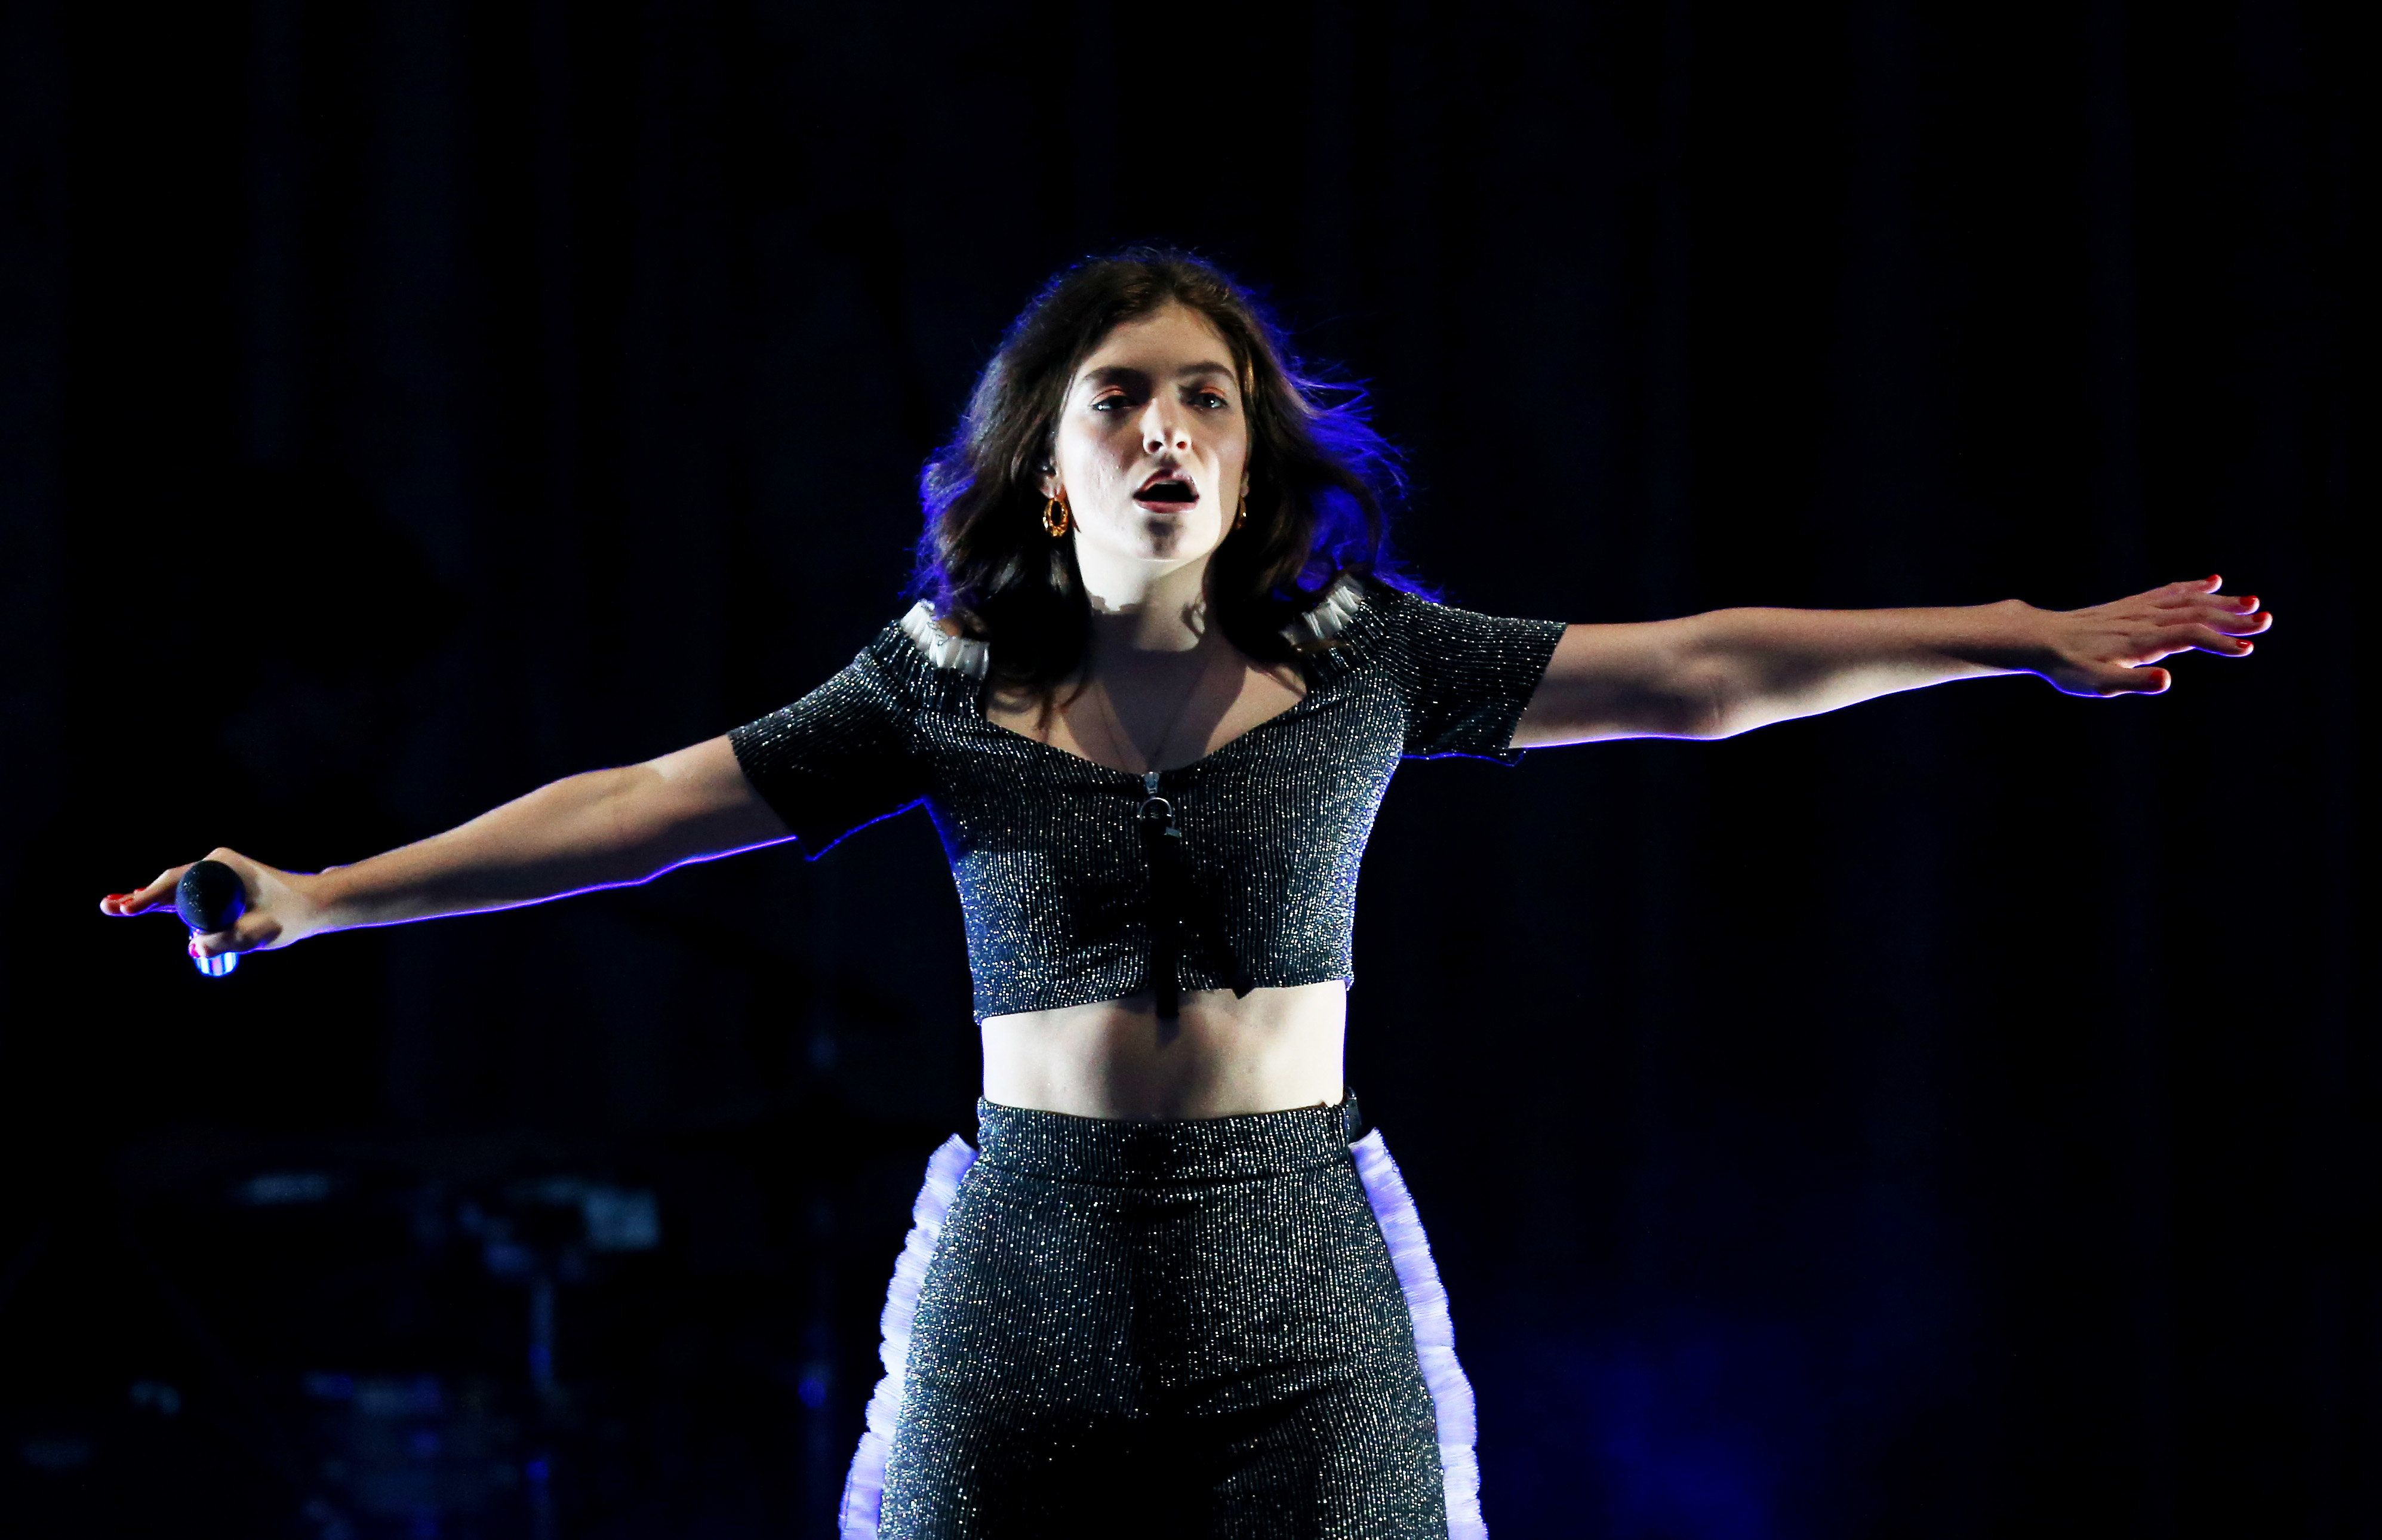 SYDNEY, AUSTRALIA - NOVEMBER 21:  Lorde performs at Sydney Opera House on November 21, 2017 in Sydney, Australia.  (Photo by Don Arnold/WireImage)